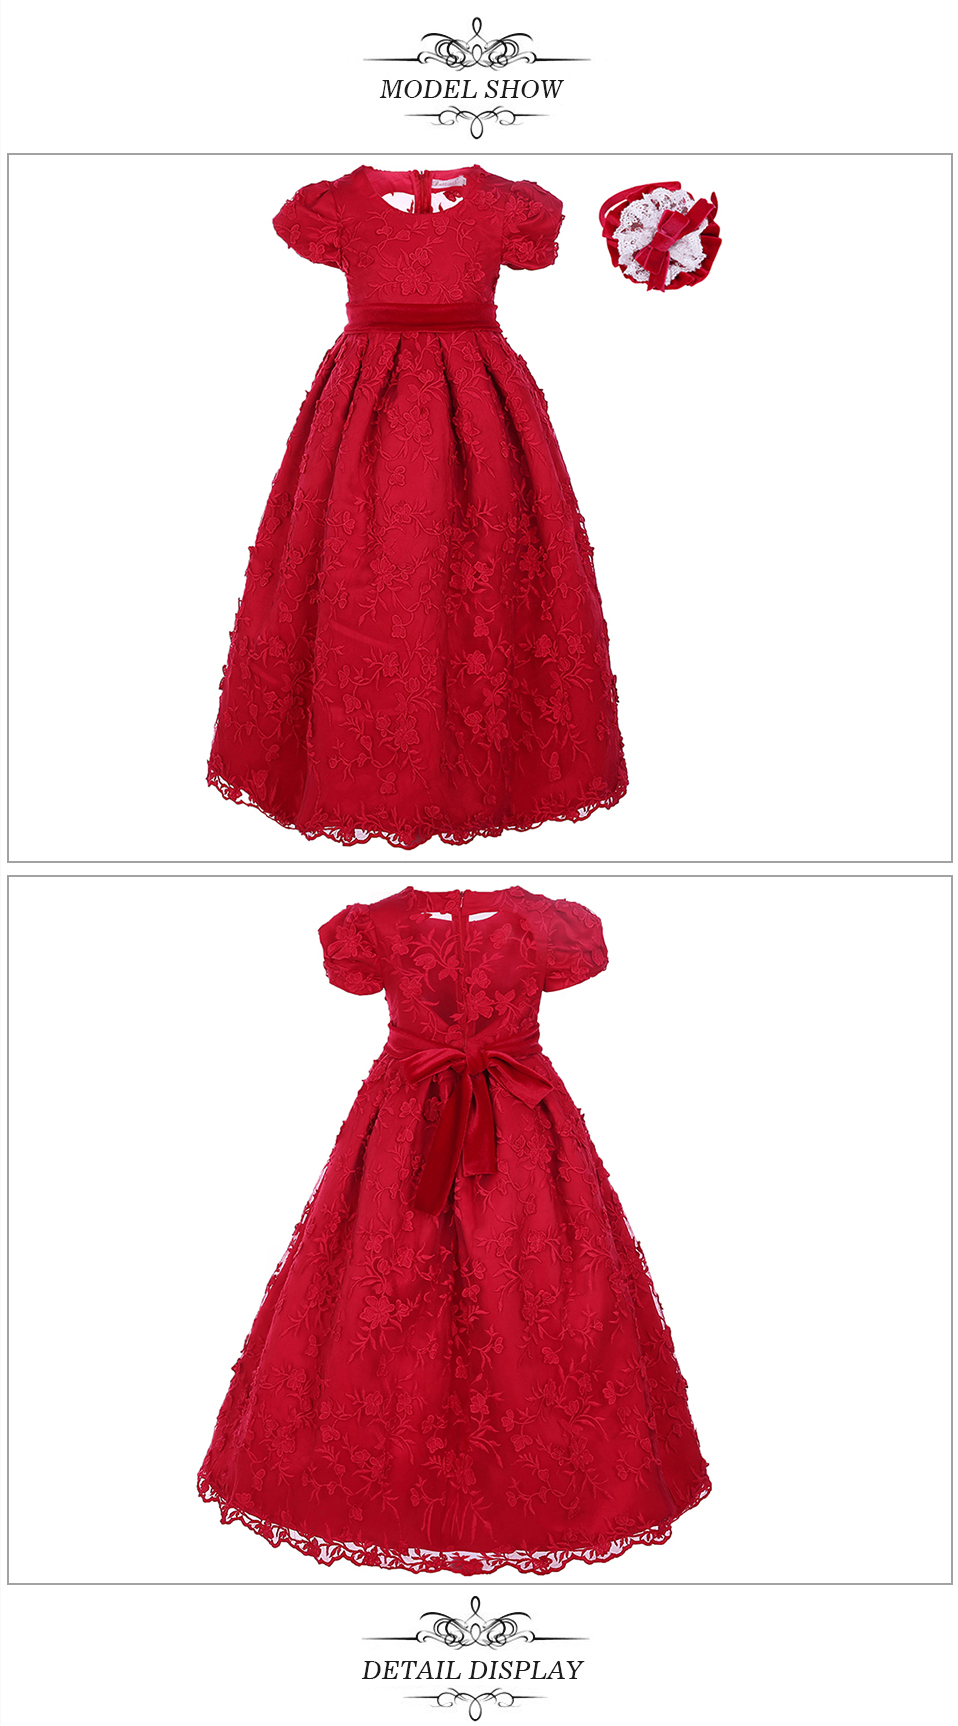 red berry clothing online shop china mother daughter matching embroidery frock long dress